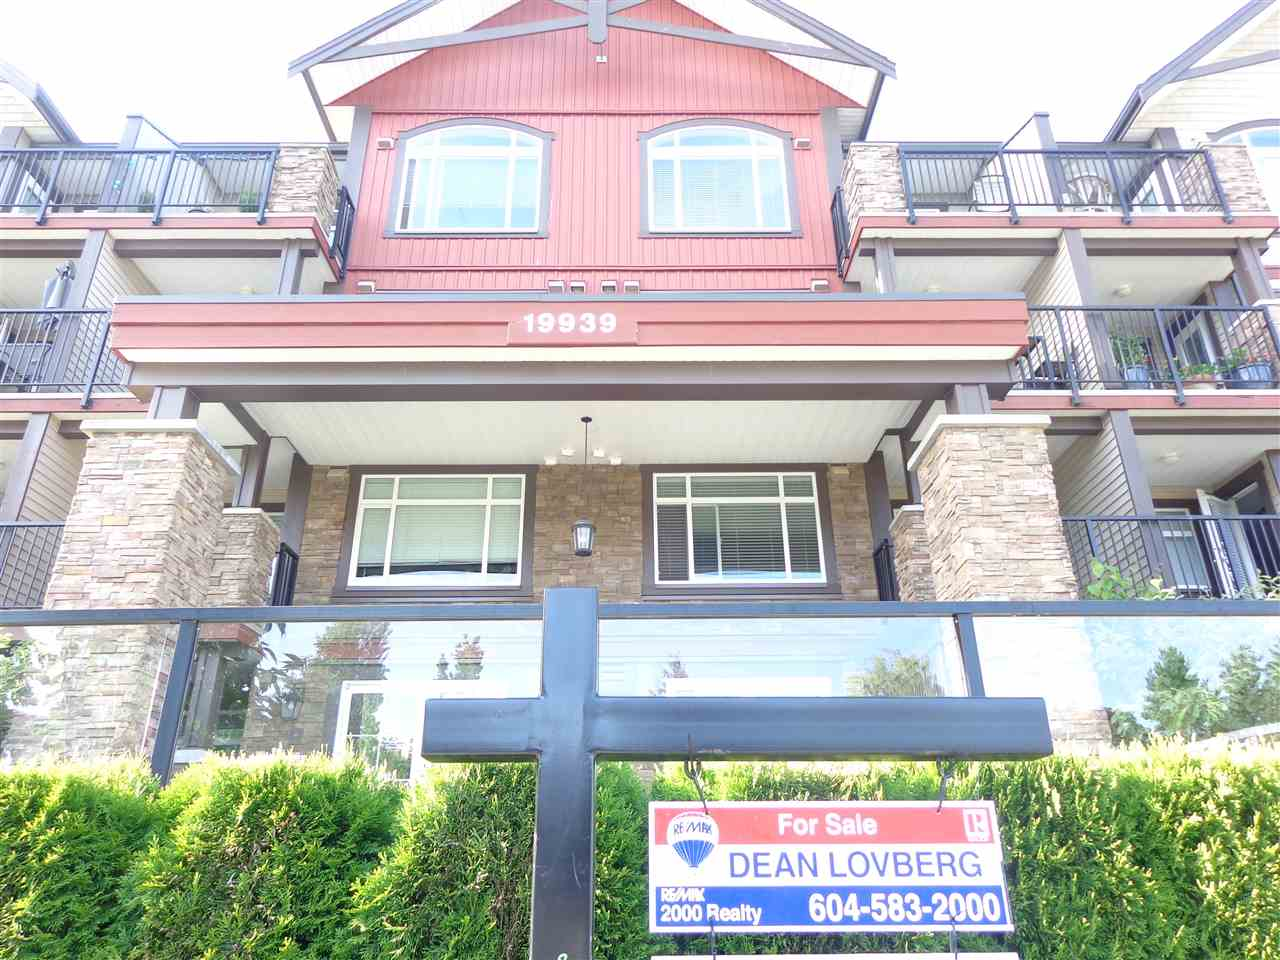 "Main Photo: 307 19939 55A Avenue in Langley: Langley City Condo for sale in ""MADISON CROSSING"" : MLS® # R2173629"